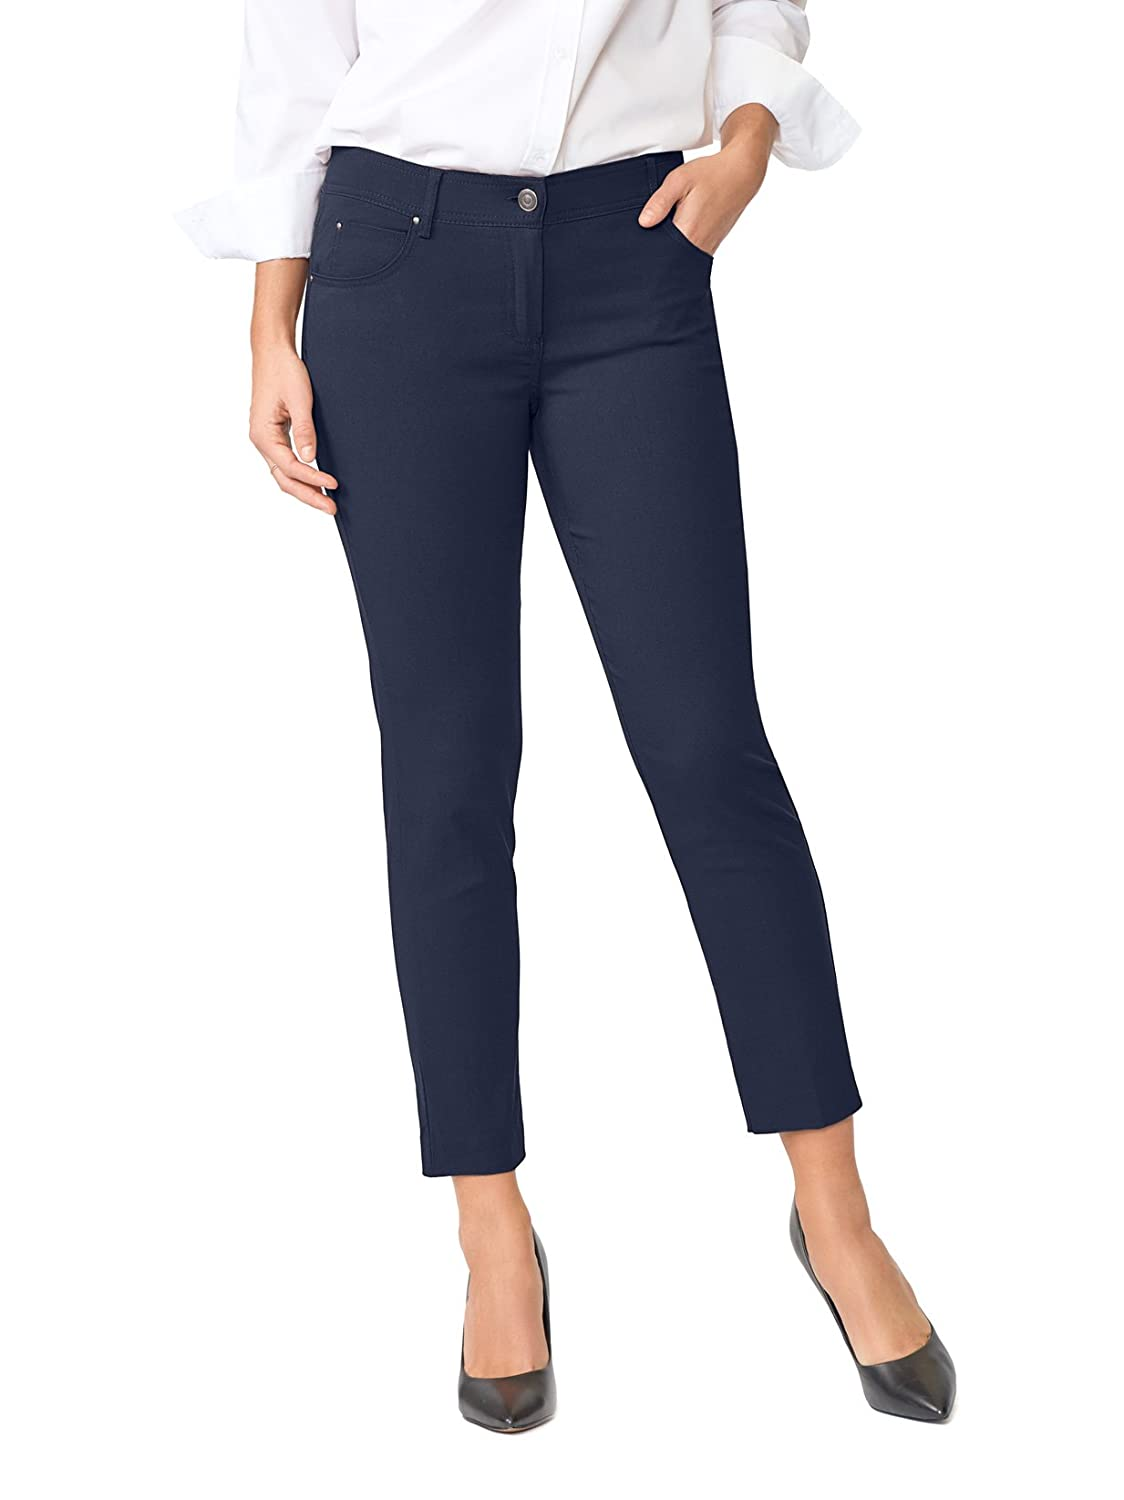 84076a56 COMFY & CHIC: Lightweight stretch ankle pants perfect for work. ULTRA  FLATTERING: Skinny straight leg ankle pants with zip fly closure and belt  loops at ...